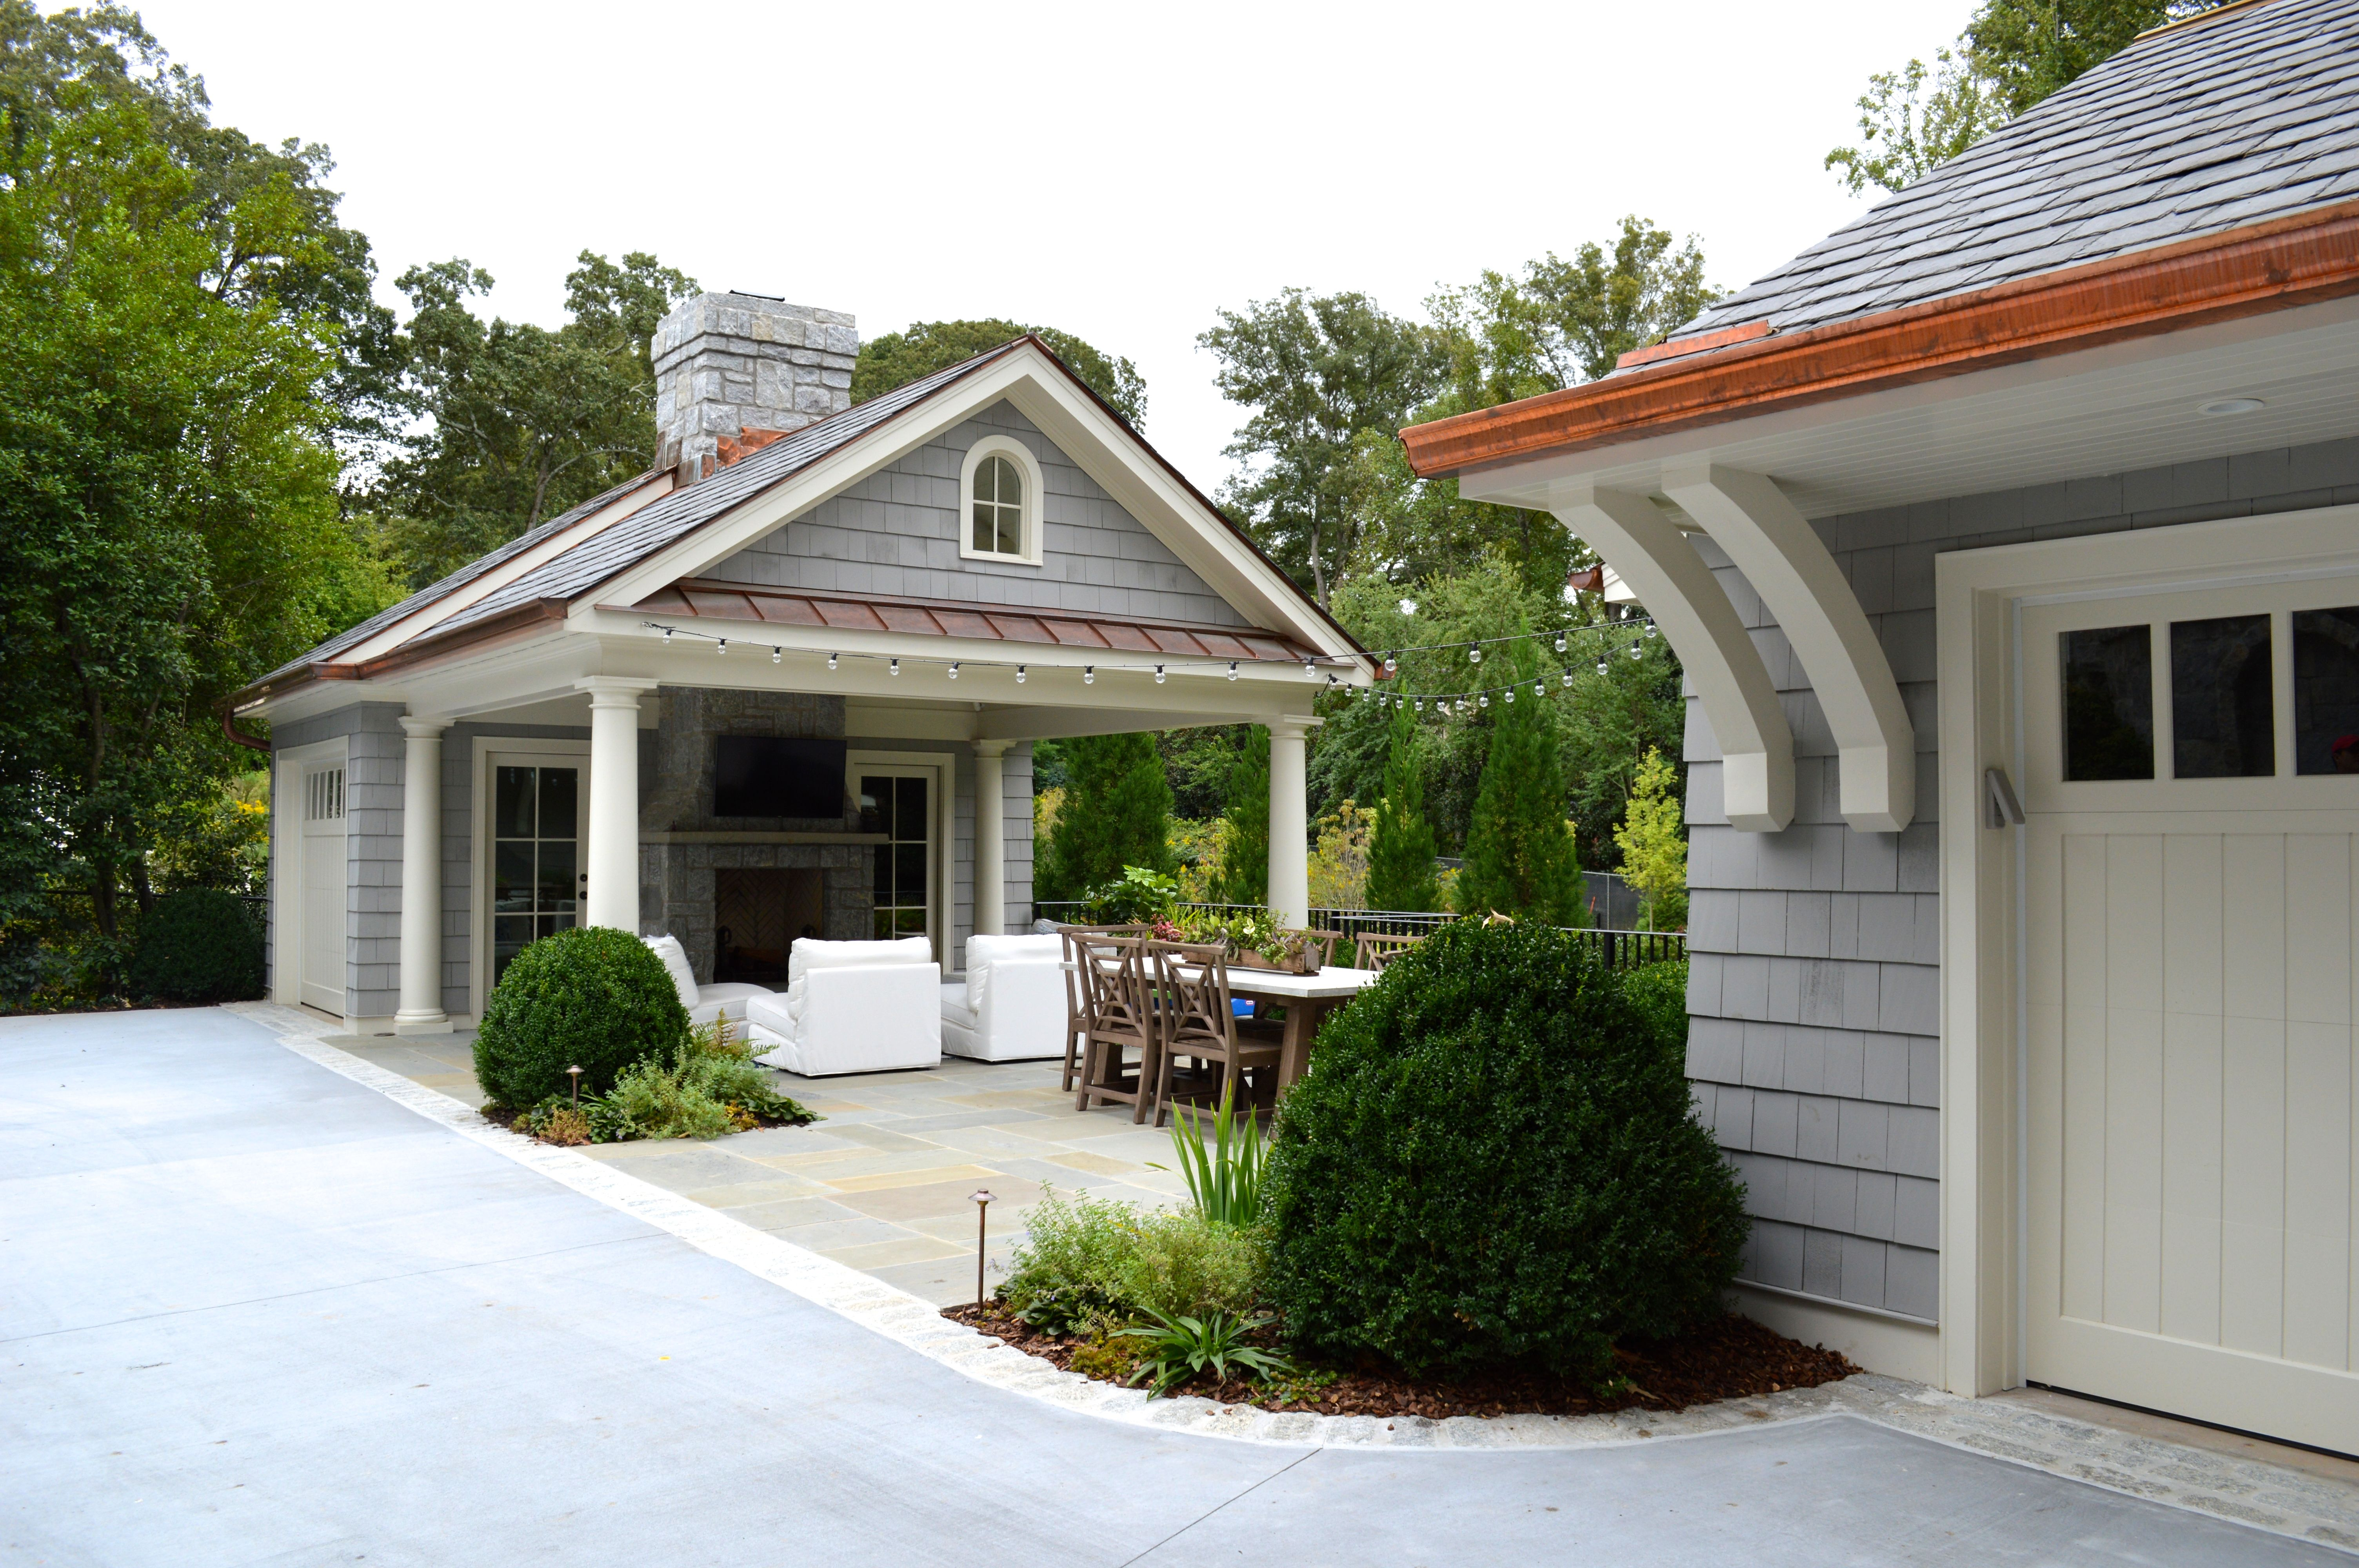 A Young Family Was Looking To Update Their Backyard For Maximum Usability And Enjoyment Removed Was A Di Pool Houses Garage Guest House Garage Plans With Loft